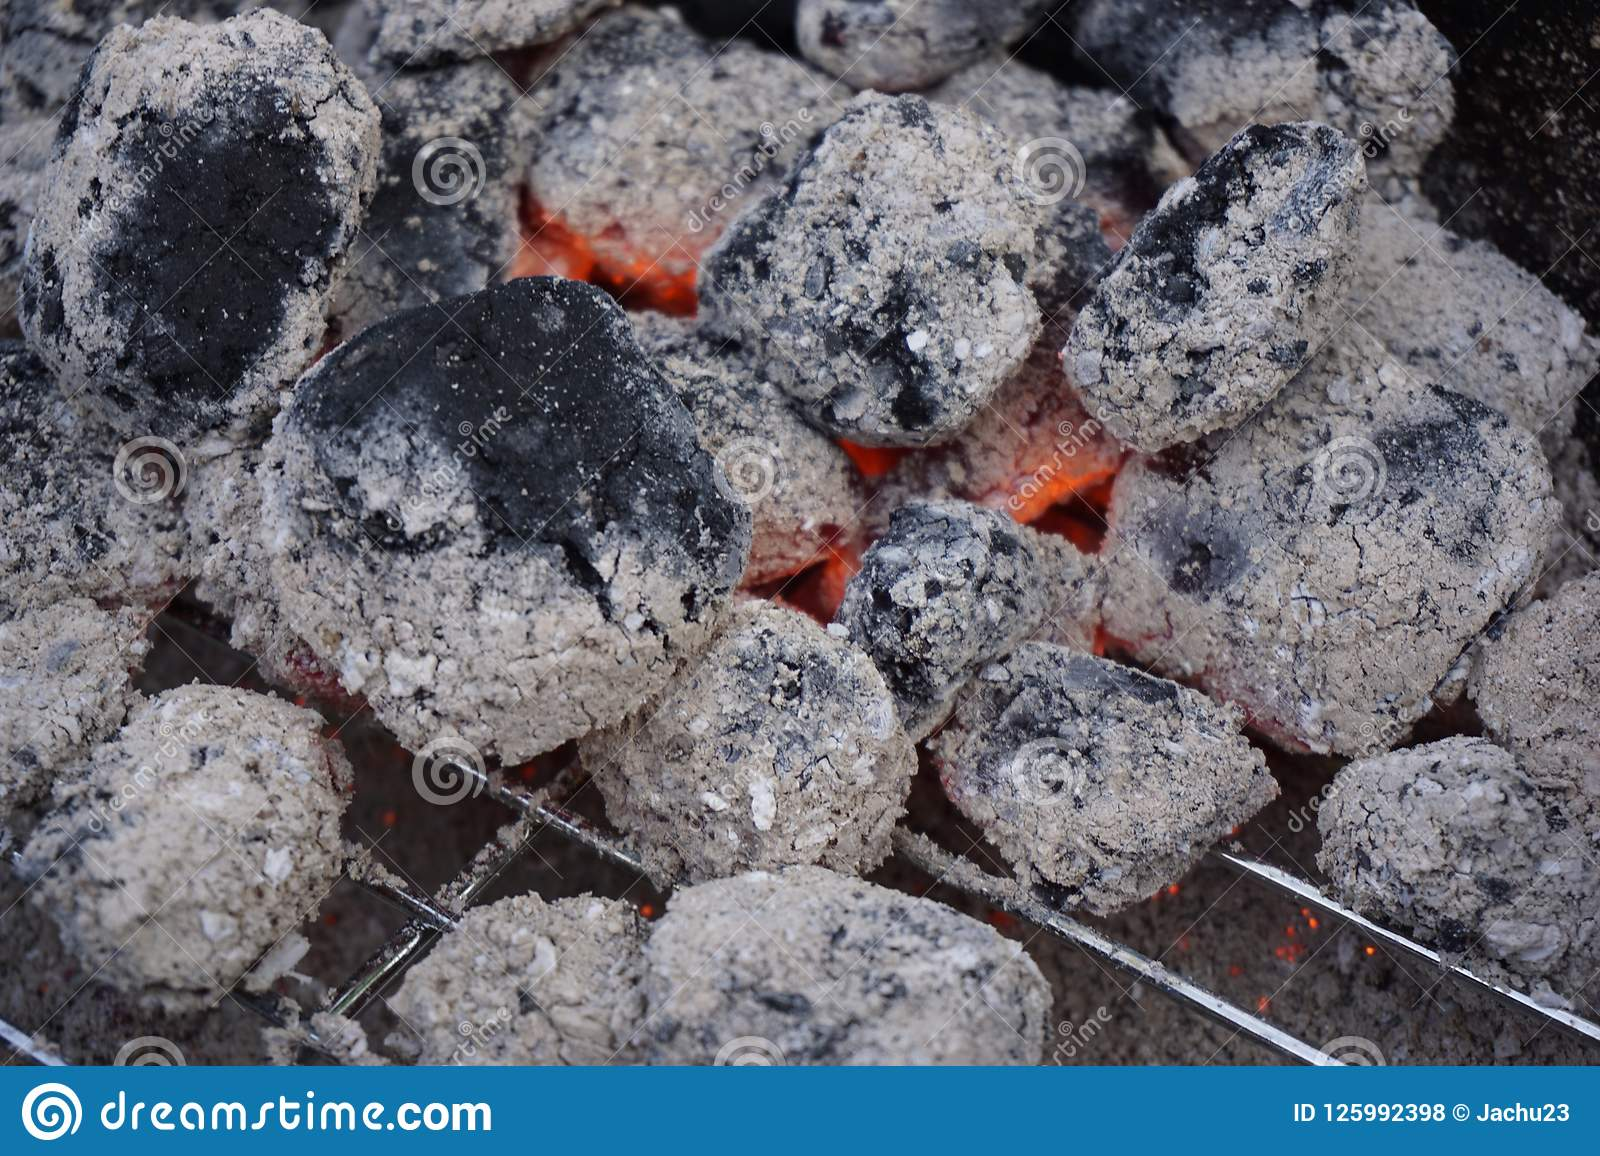 the glowing pieces of charcoal lie on the grill